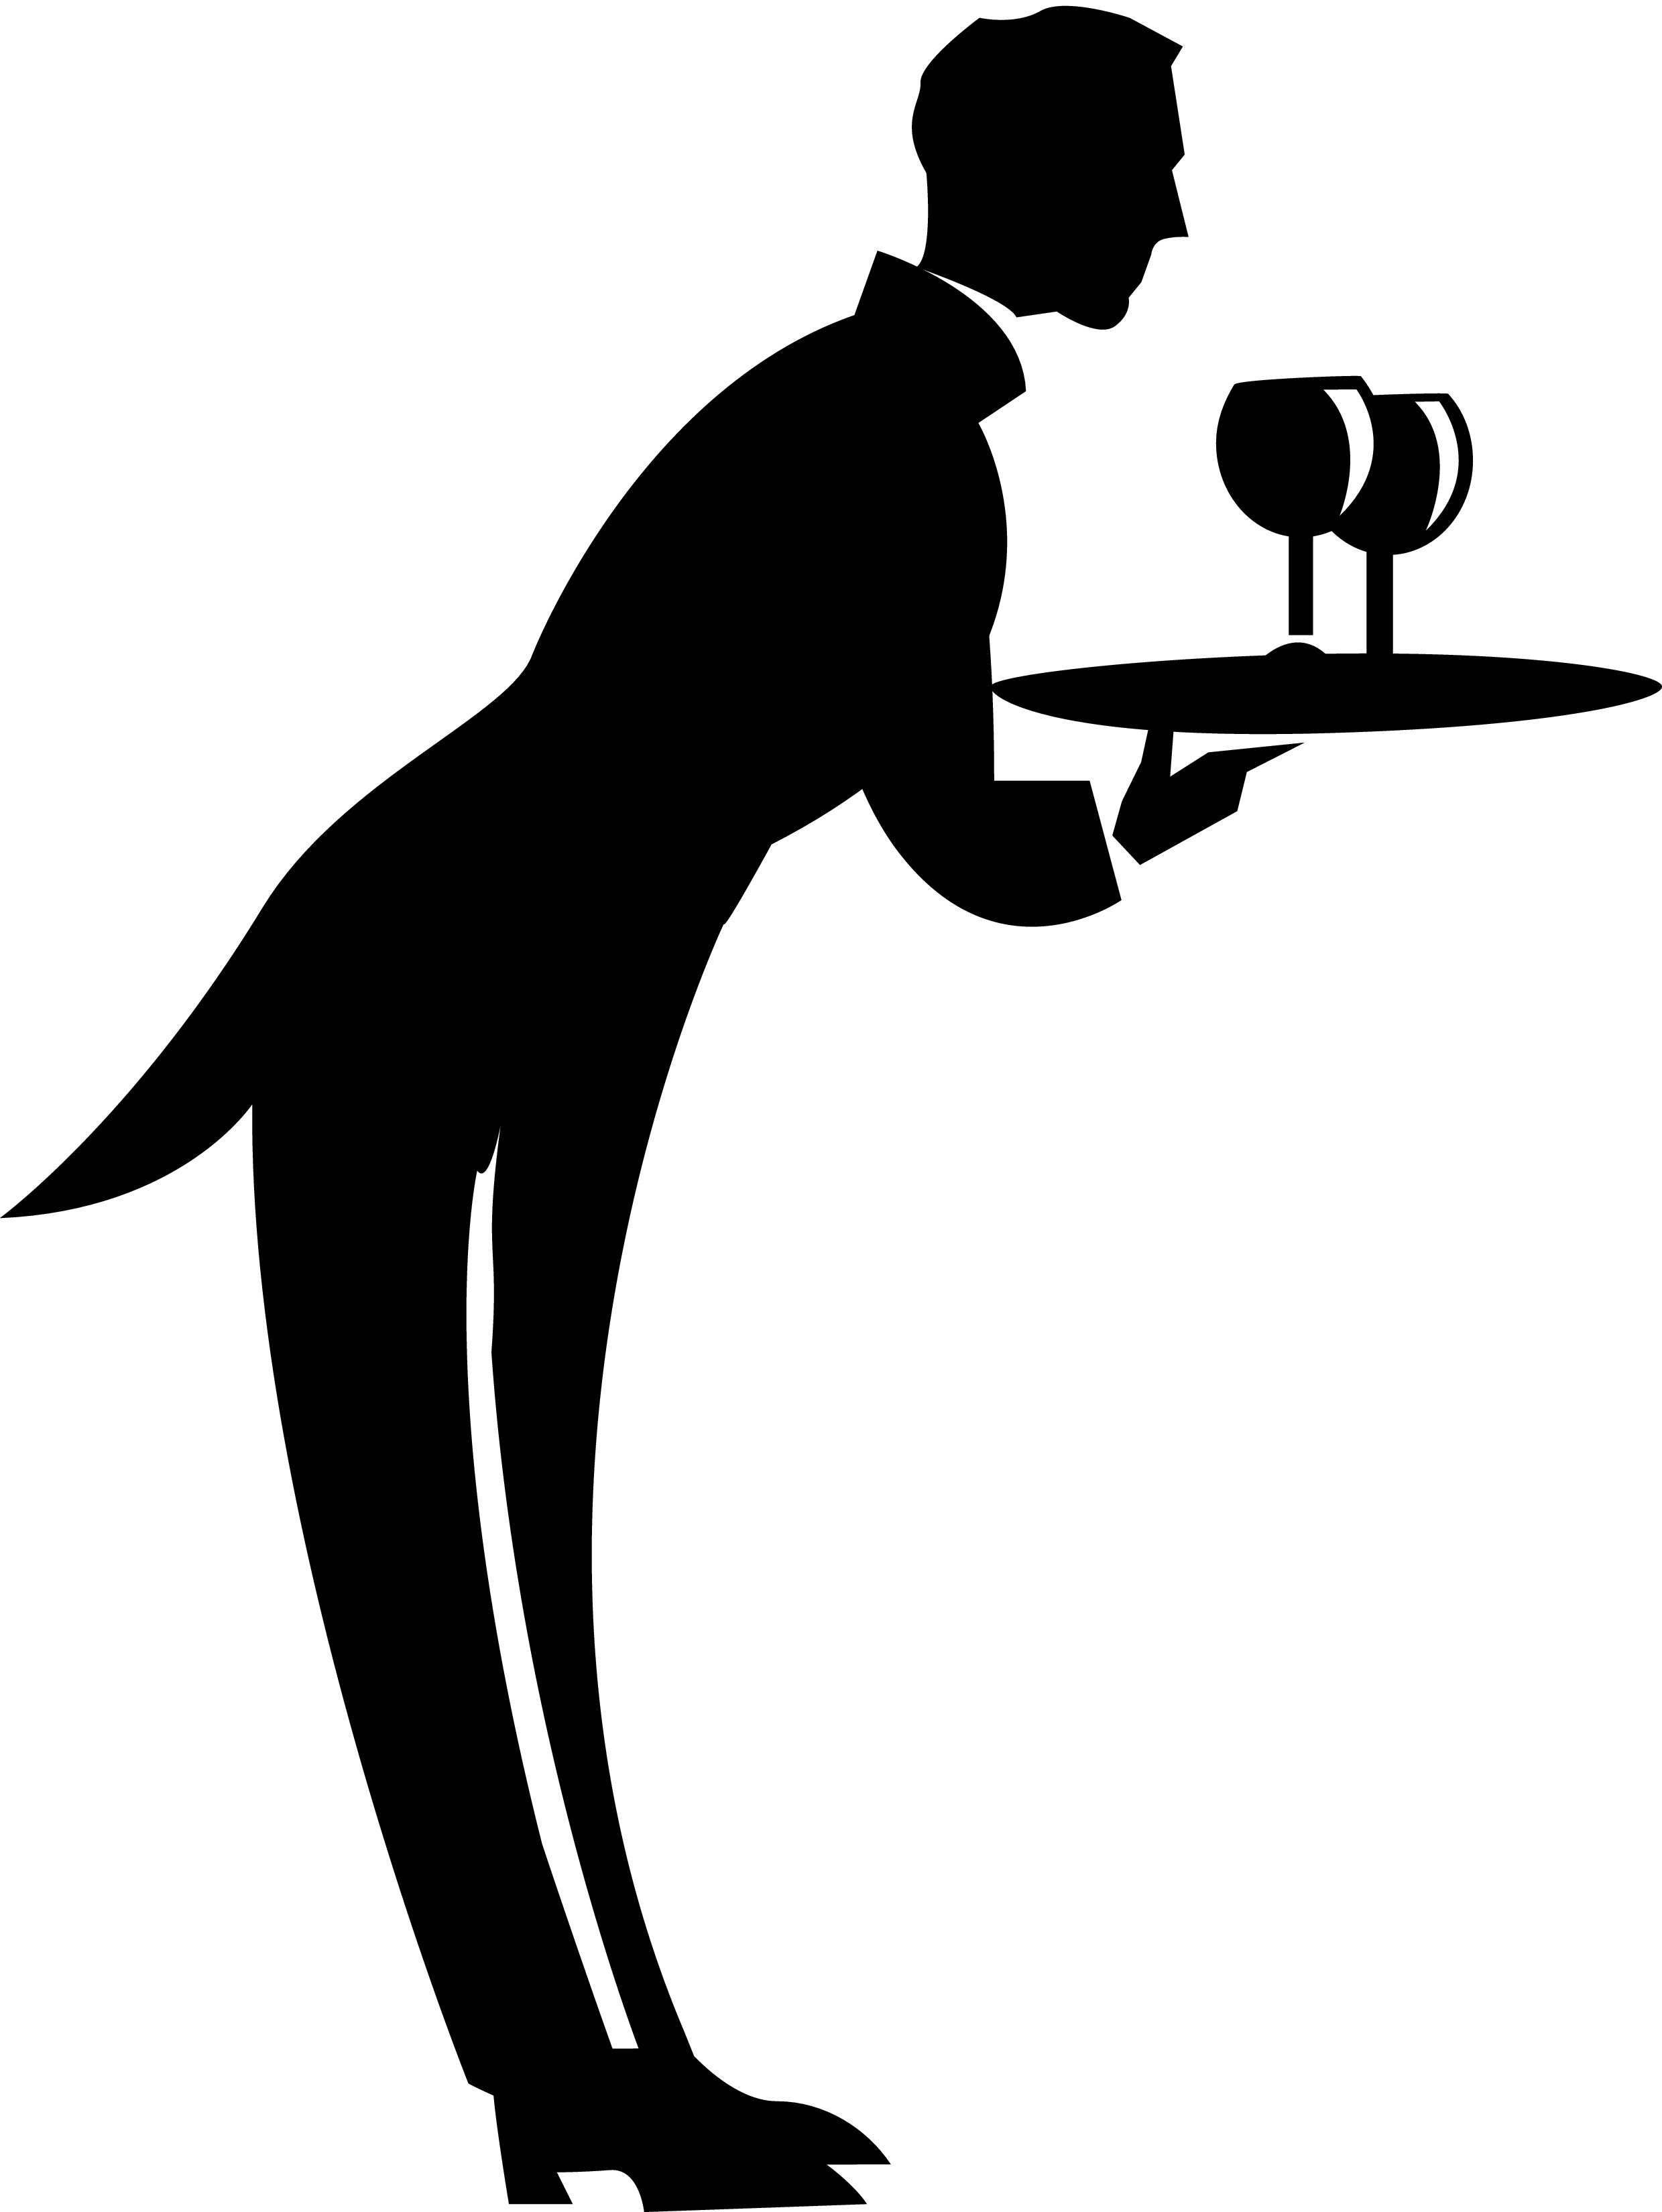 10 Waiter Clip Art Free Cliparts That You Can Download To You Computer